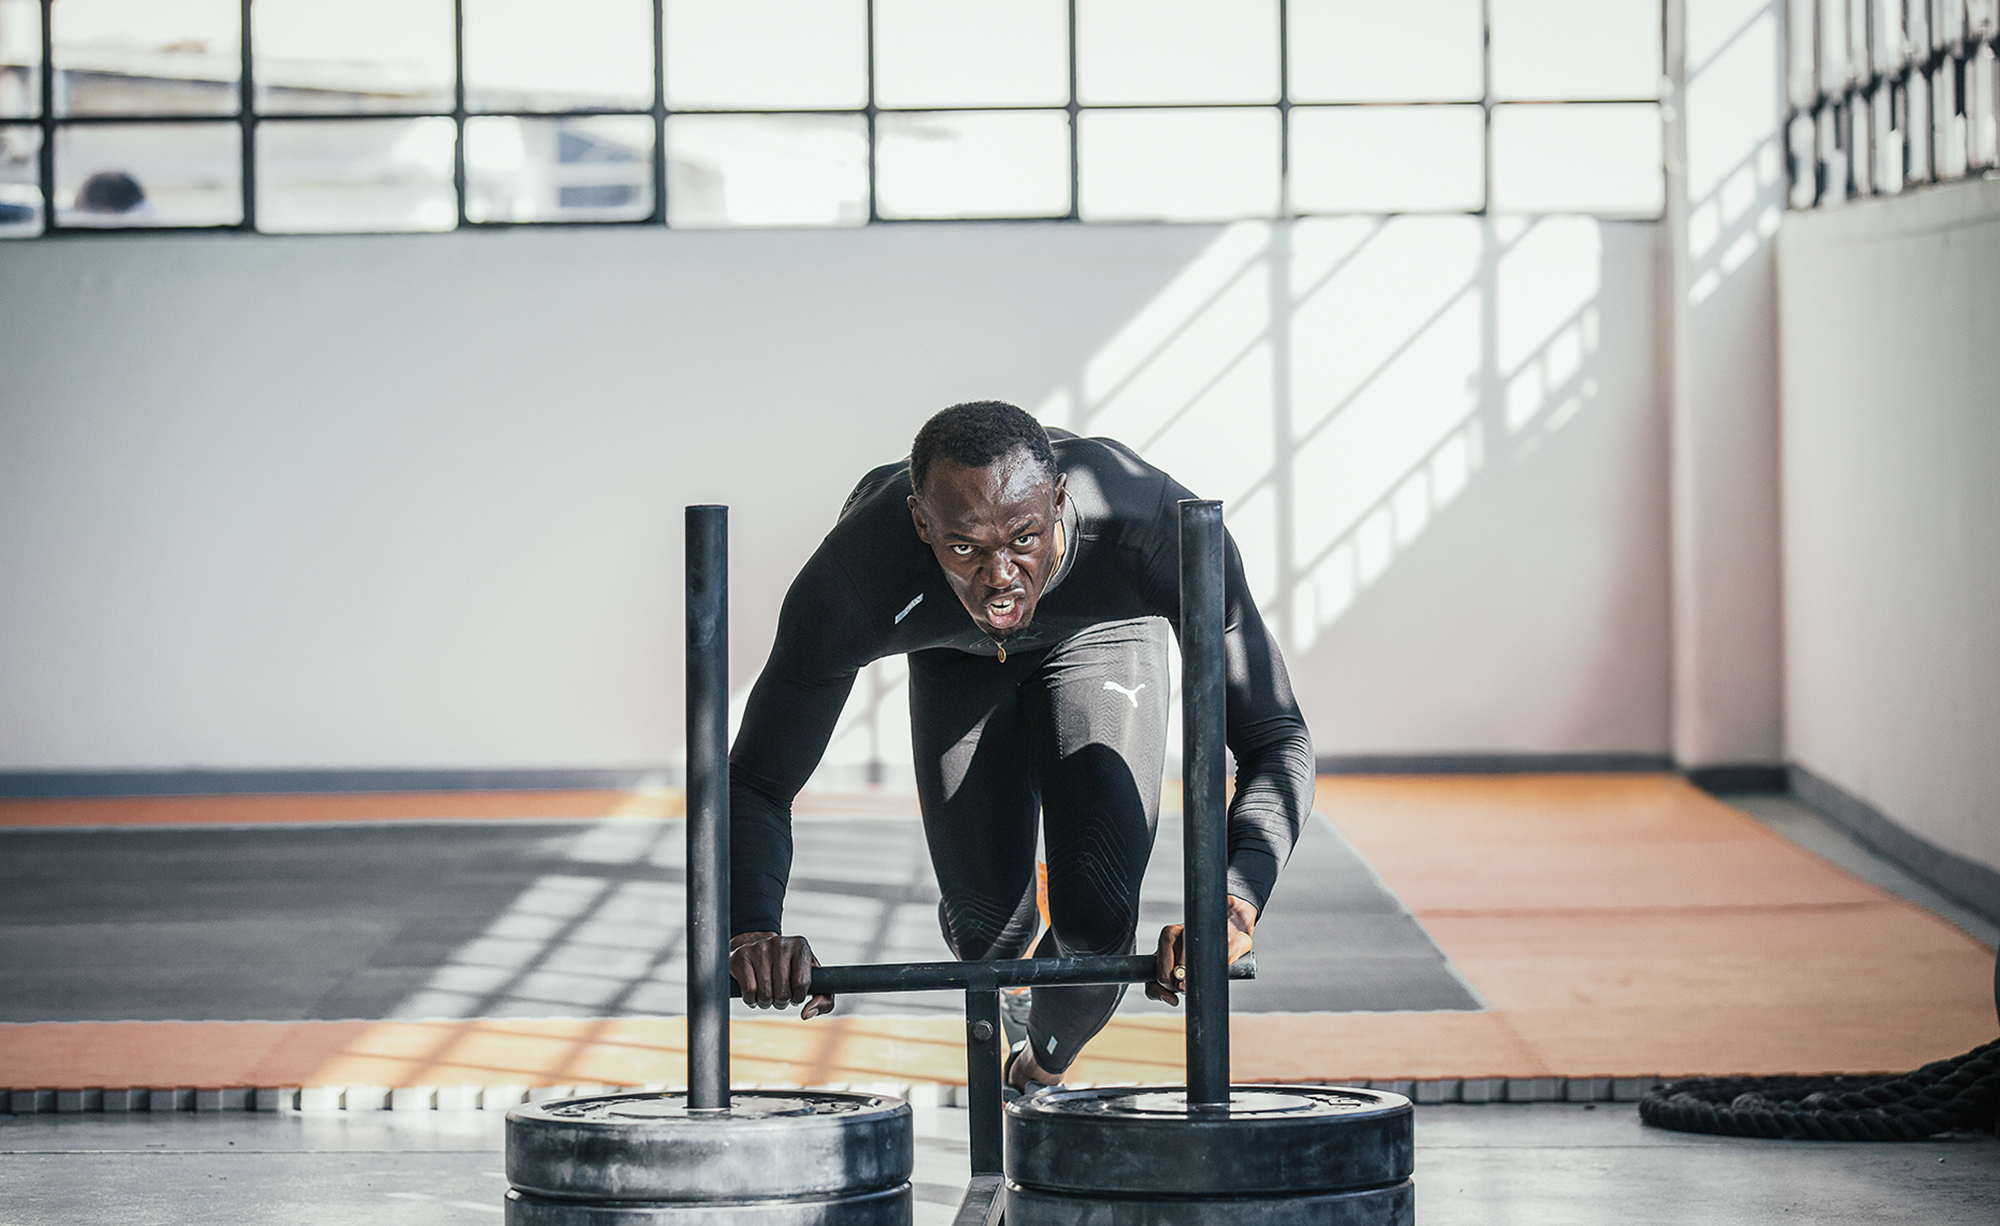 Usain Bolt working out. Photographed in Milan Italy for PUMA Runnign and Training